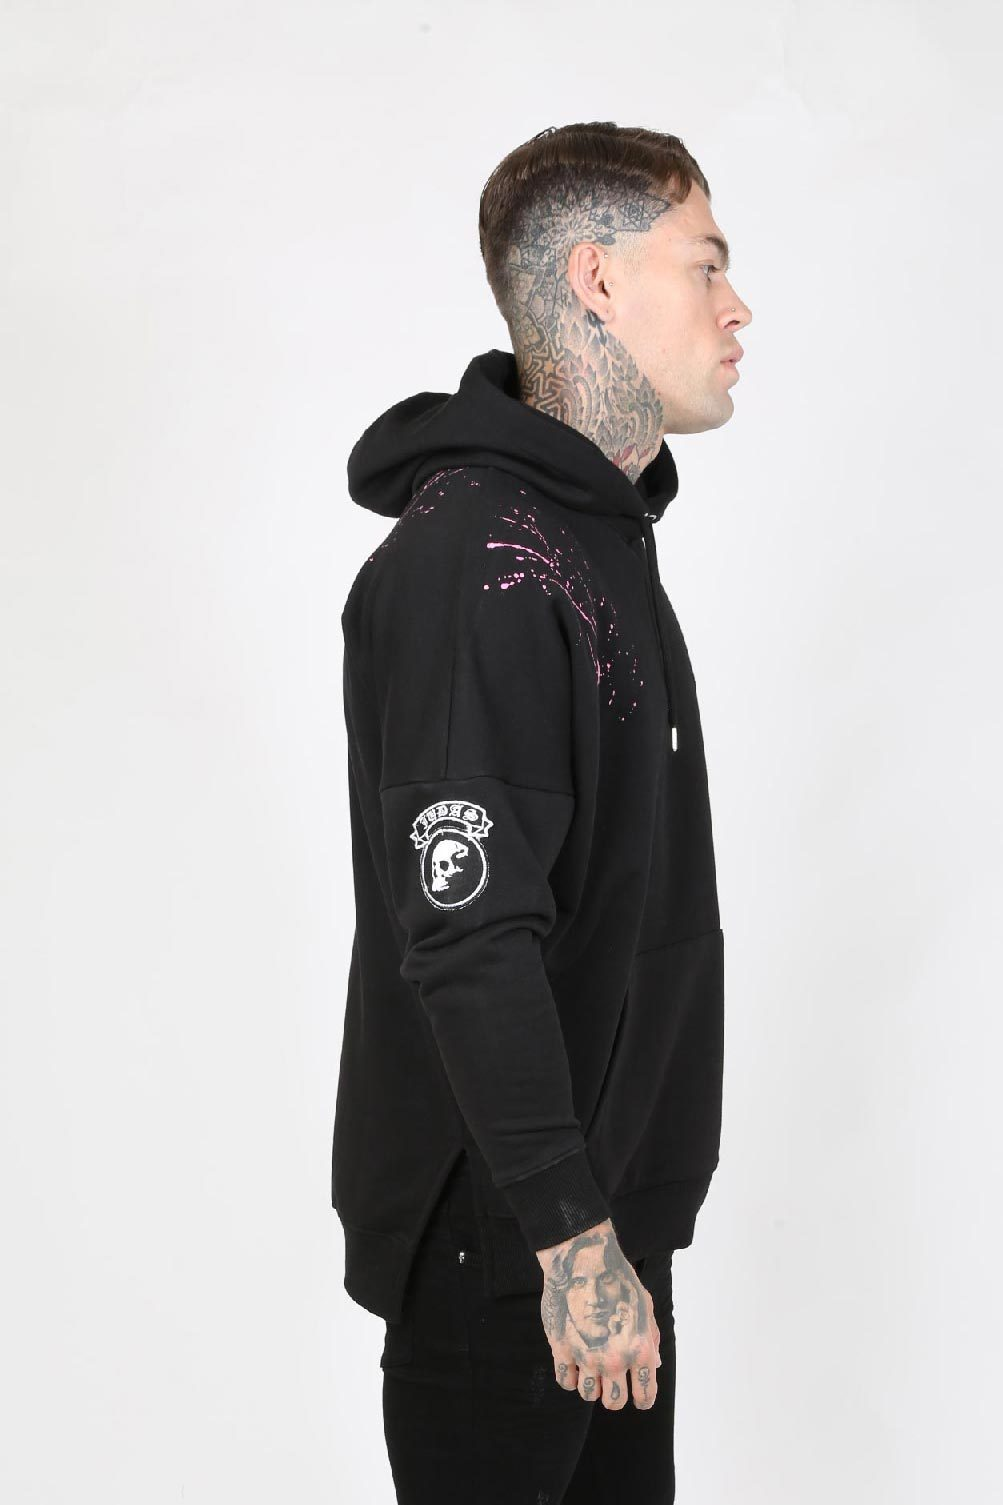 Judas Sinned Graff Graffiti Logo Split Hem Drop Men's Oversized Hoodie - Black - Judas Sinned Clothing